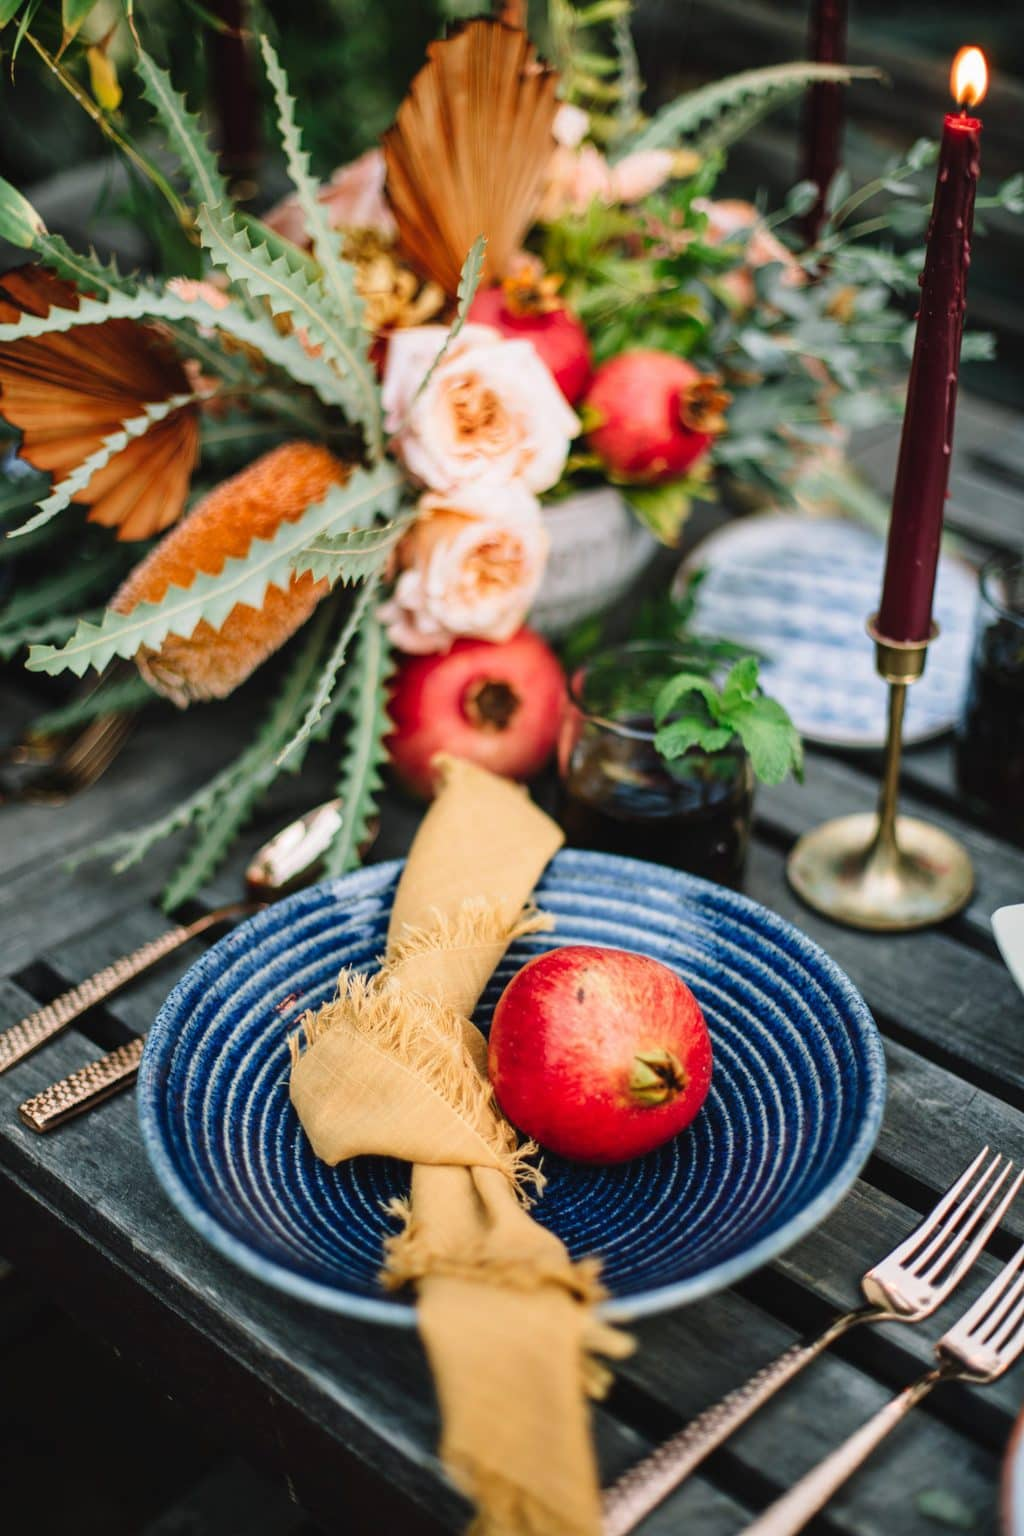 blue plate with yellow napkin on wooden table next to pastel flours